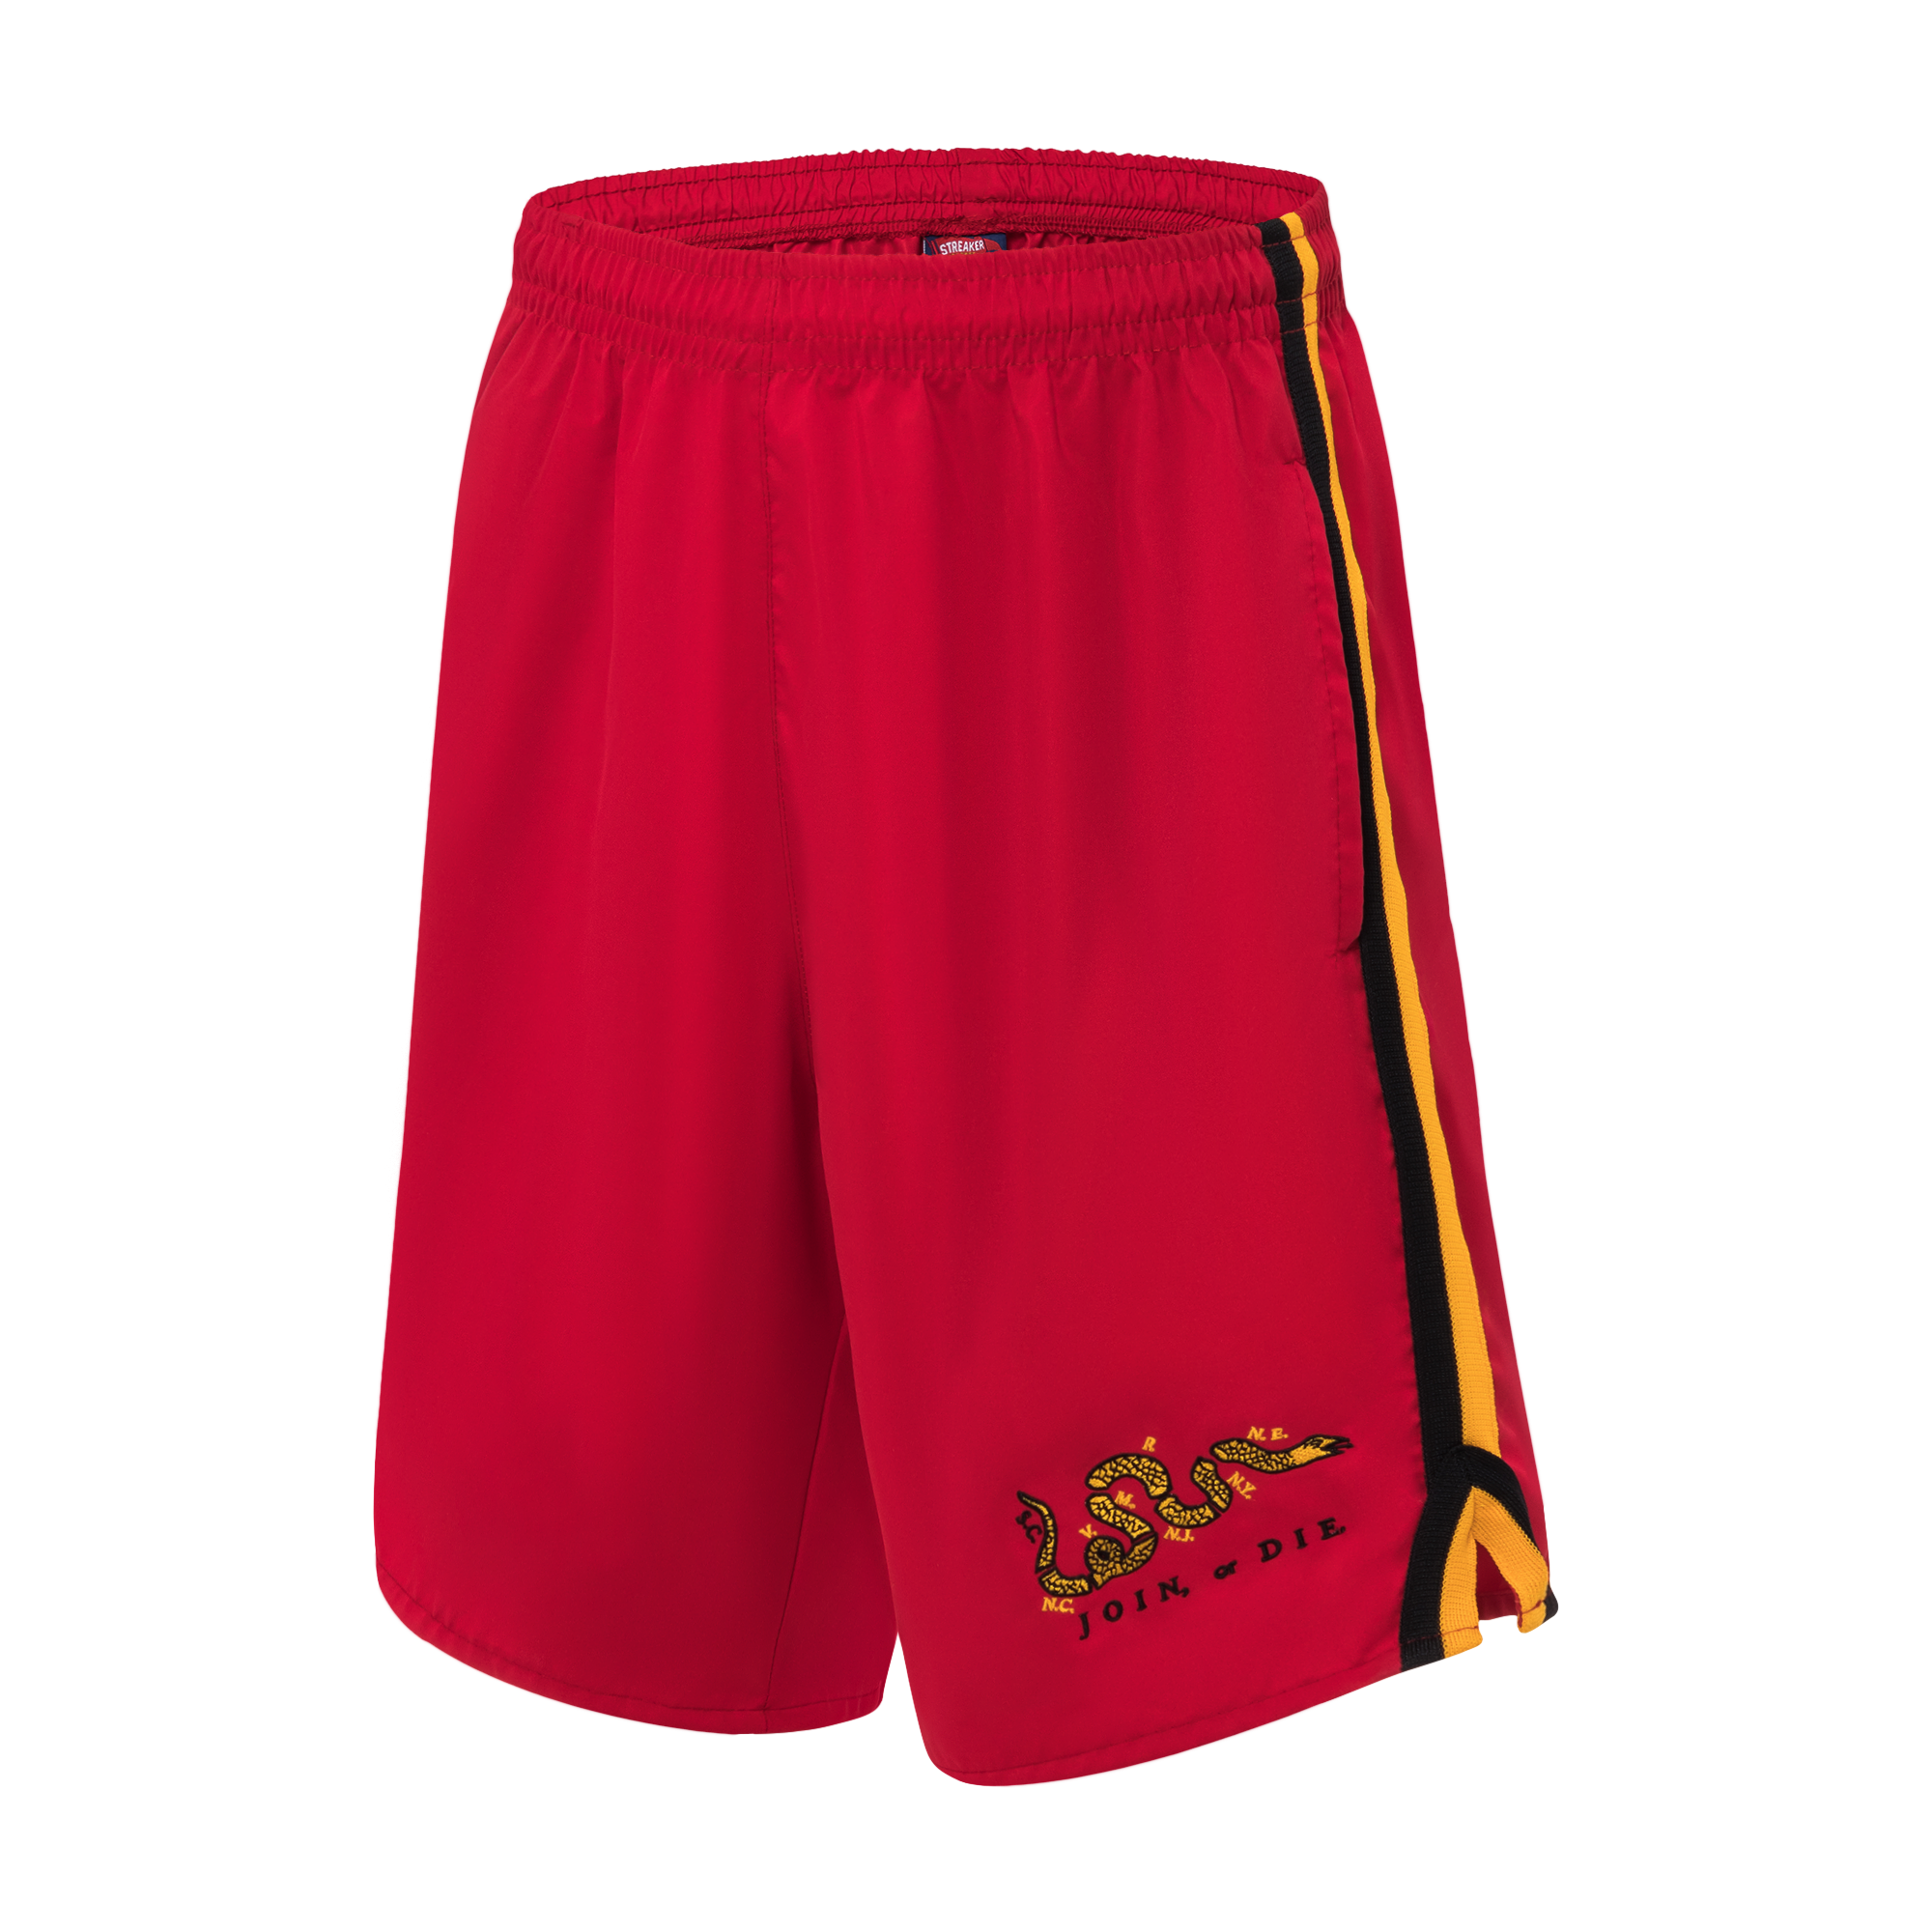 red Shorts product photography